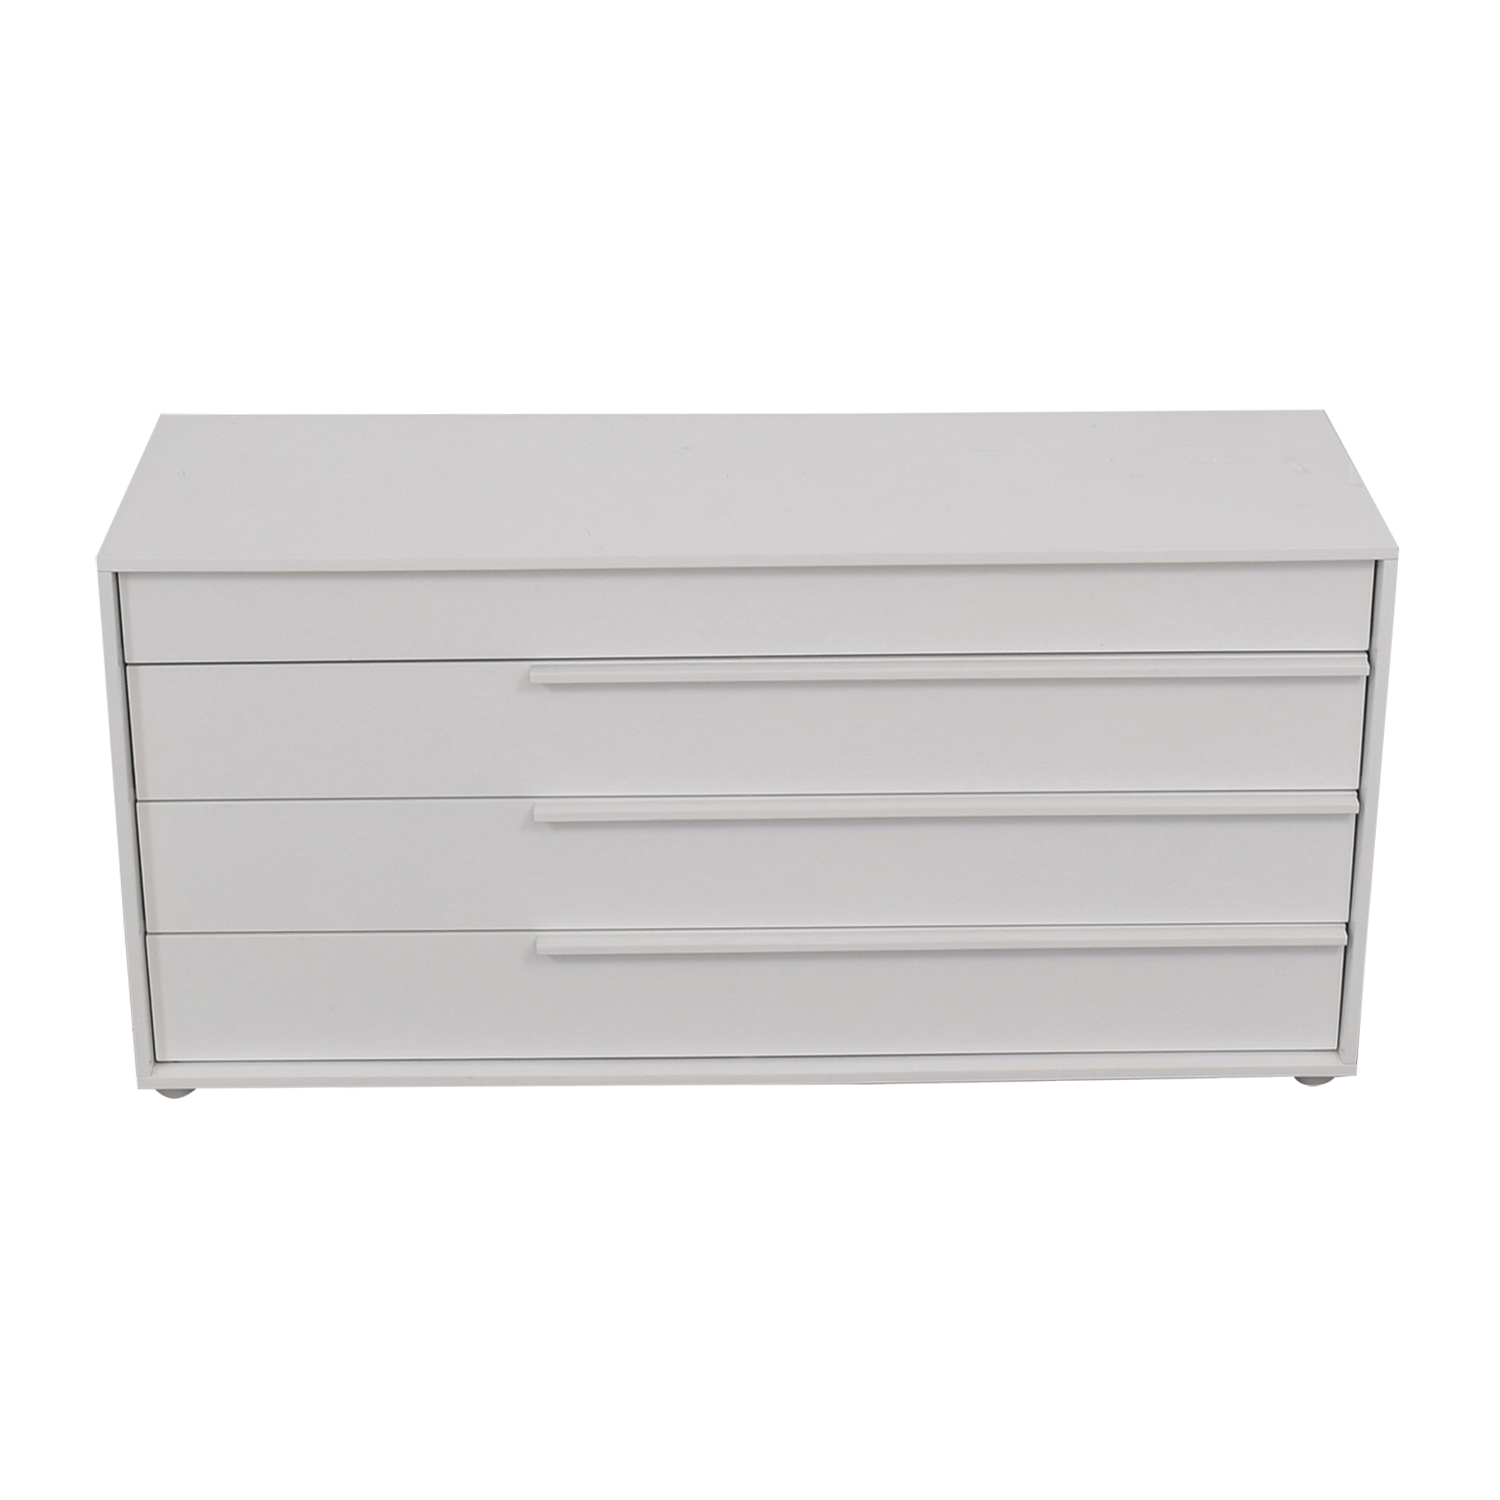 shop Modloft Jane Glossy White Four-Drawer Dresser Modloft